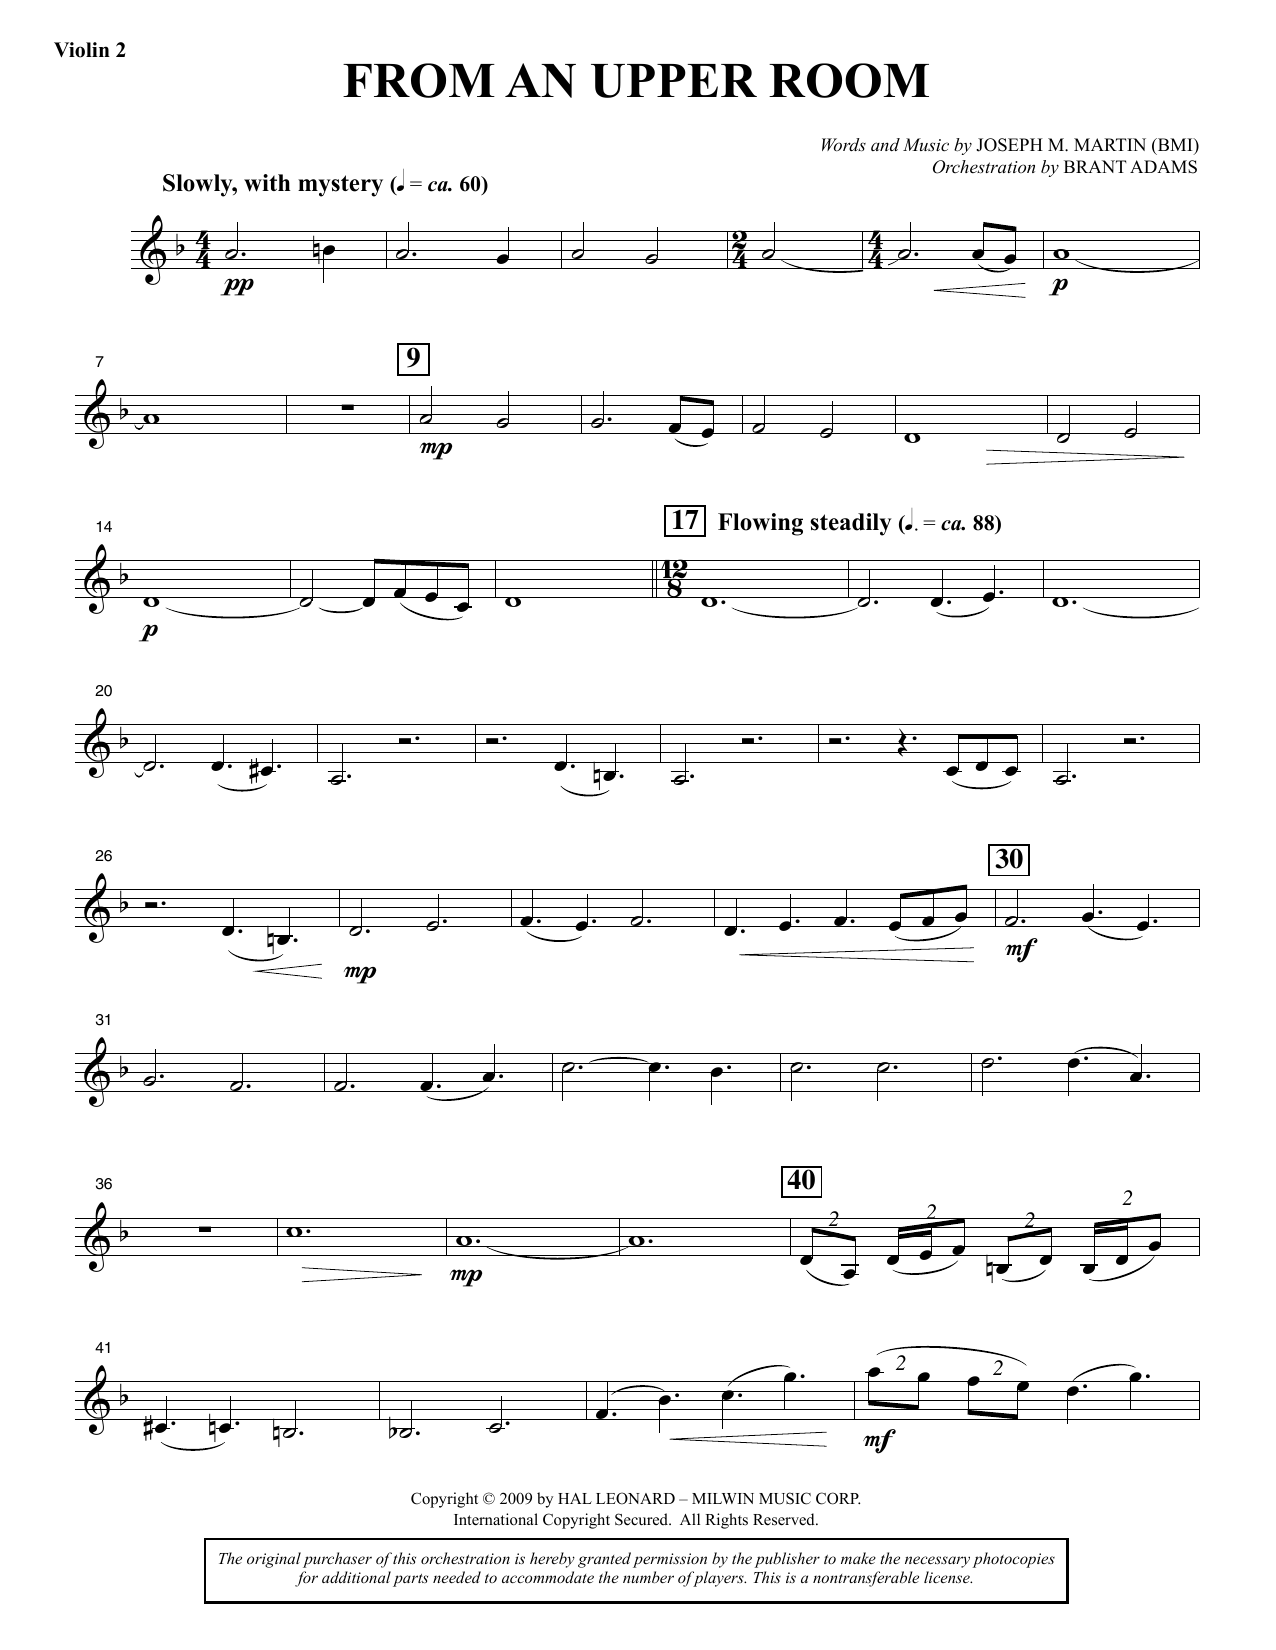 Joseph M. Martin From An Upper Room (from Lenten Sketches) - Violin 2 sheet music notes and chords. Download Printable PDF.